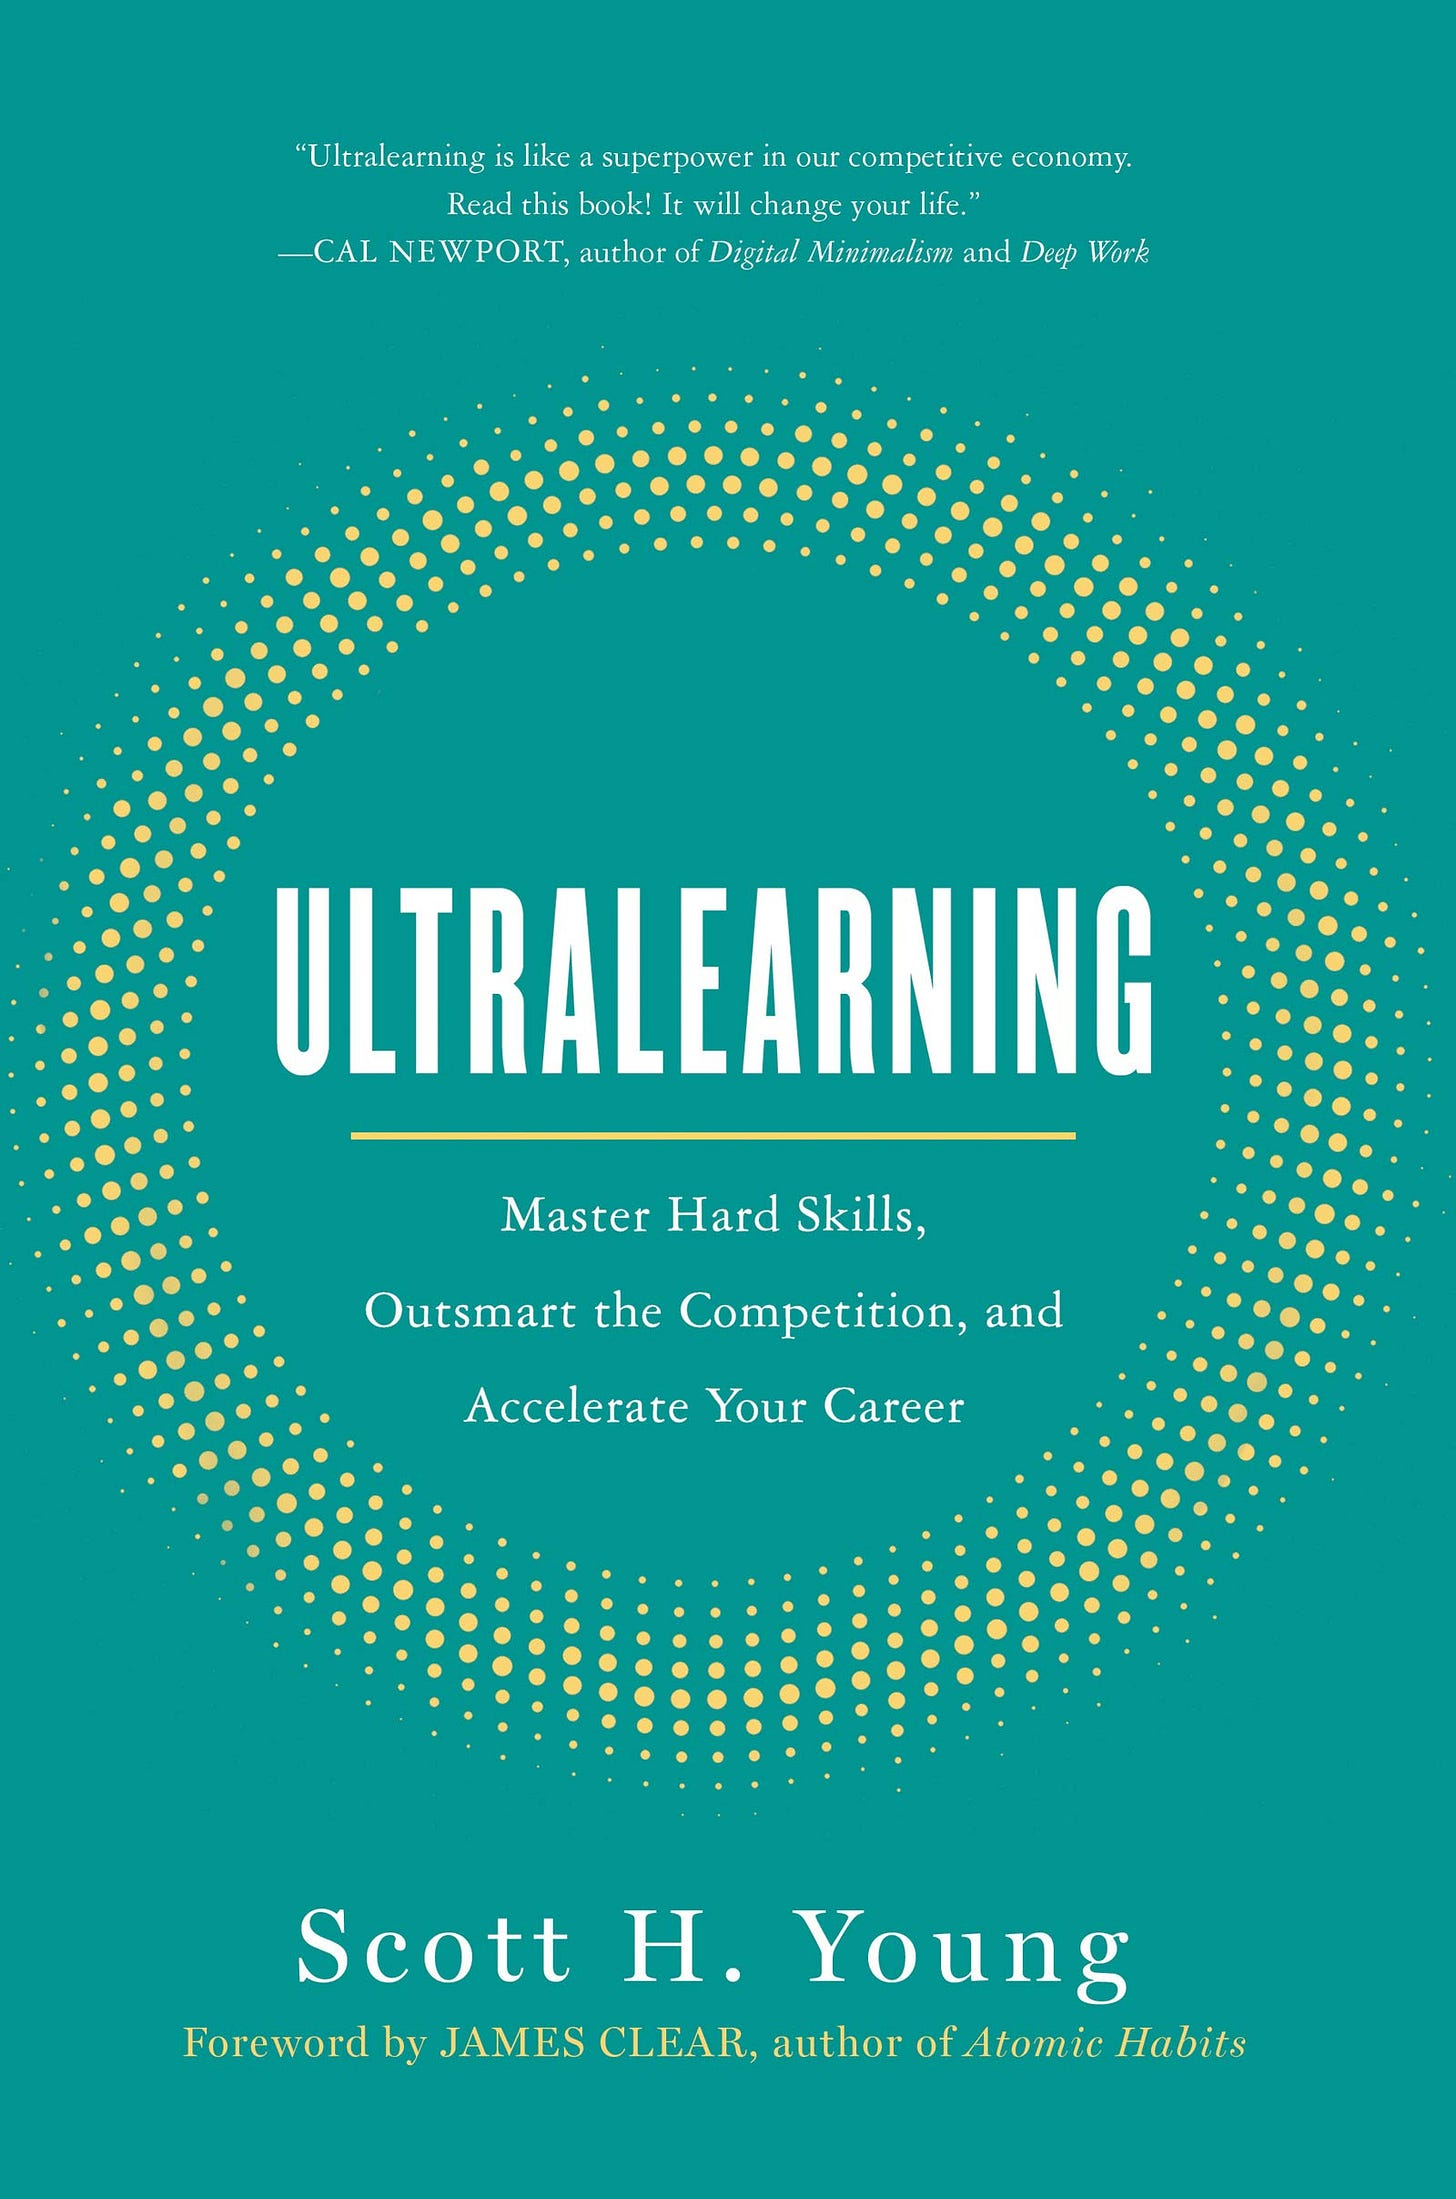 Ultralearning: Master Hard Skills, Outsmart the Competition, and Accelerate  Your Career: Young, Scott, Clear, James: 9780062852687: Amazon.com: Books